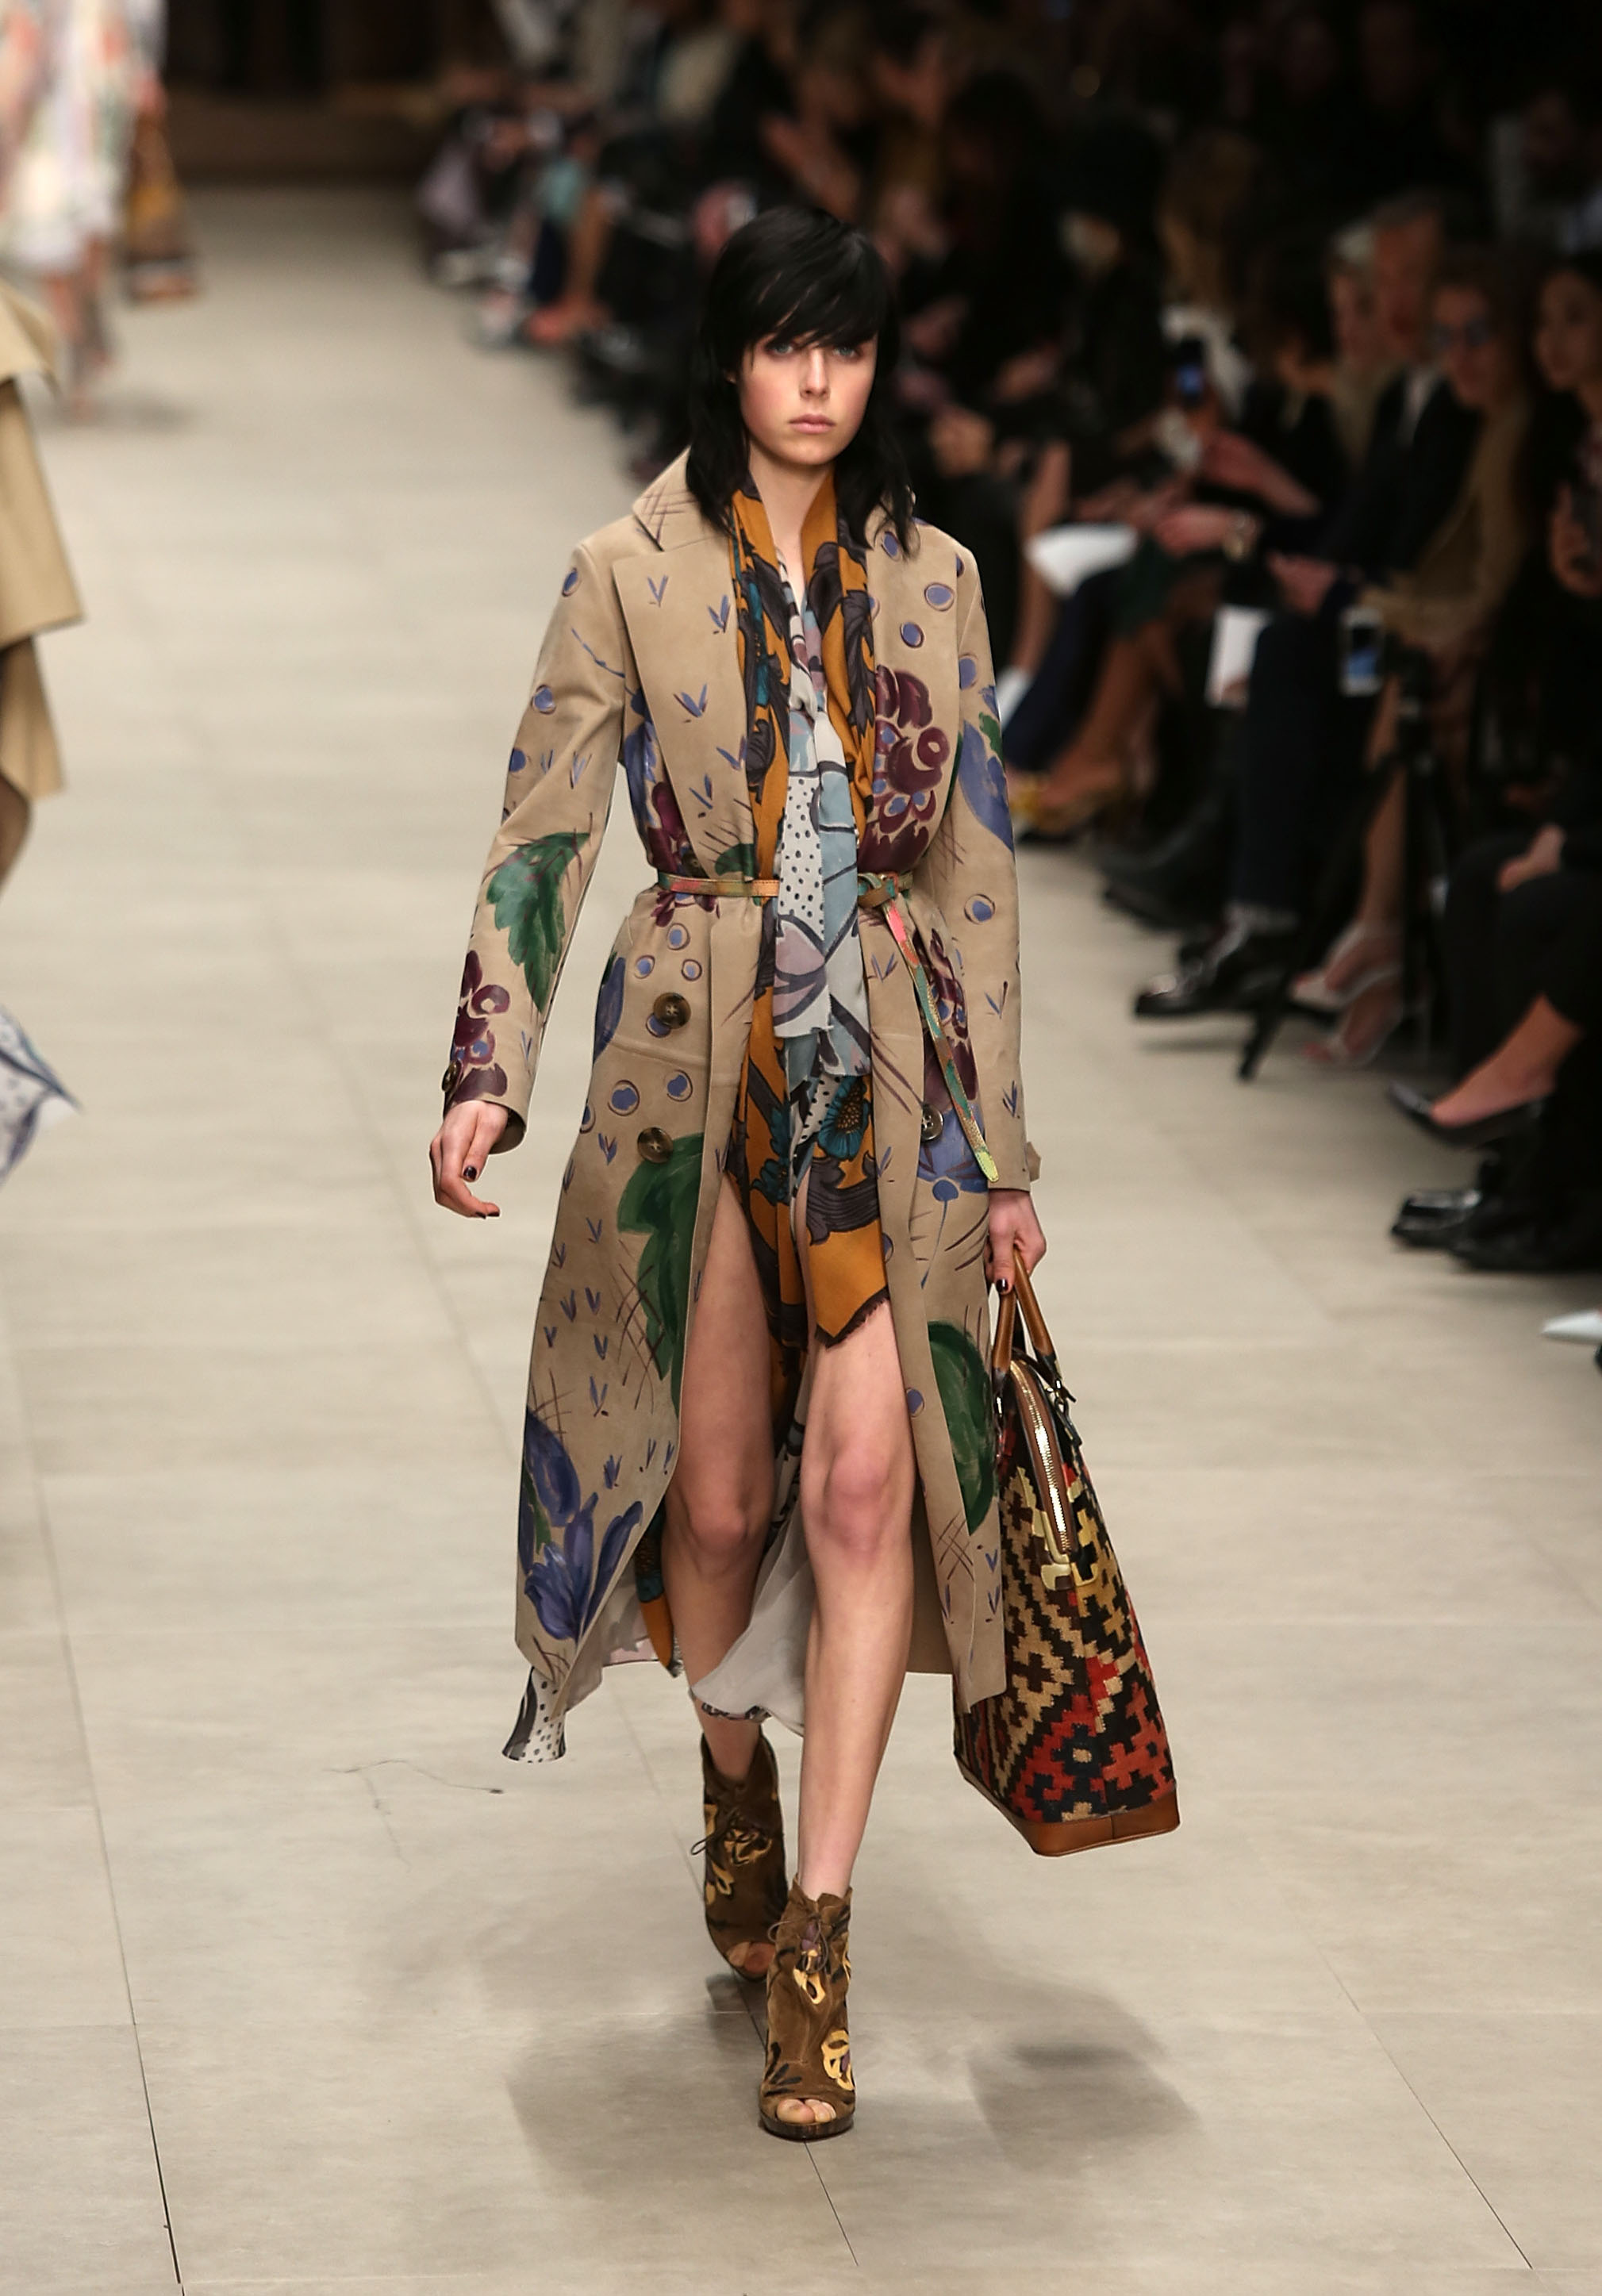 a54ae9a9ed14 Harry Styles attends the Burberry Prorsum London Fashion Week 2014 ...